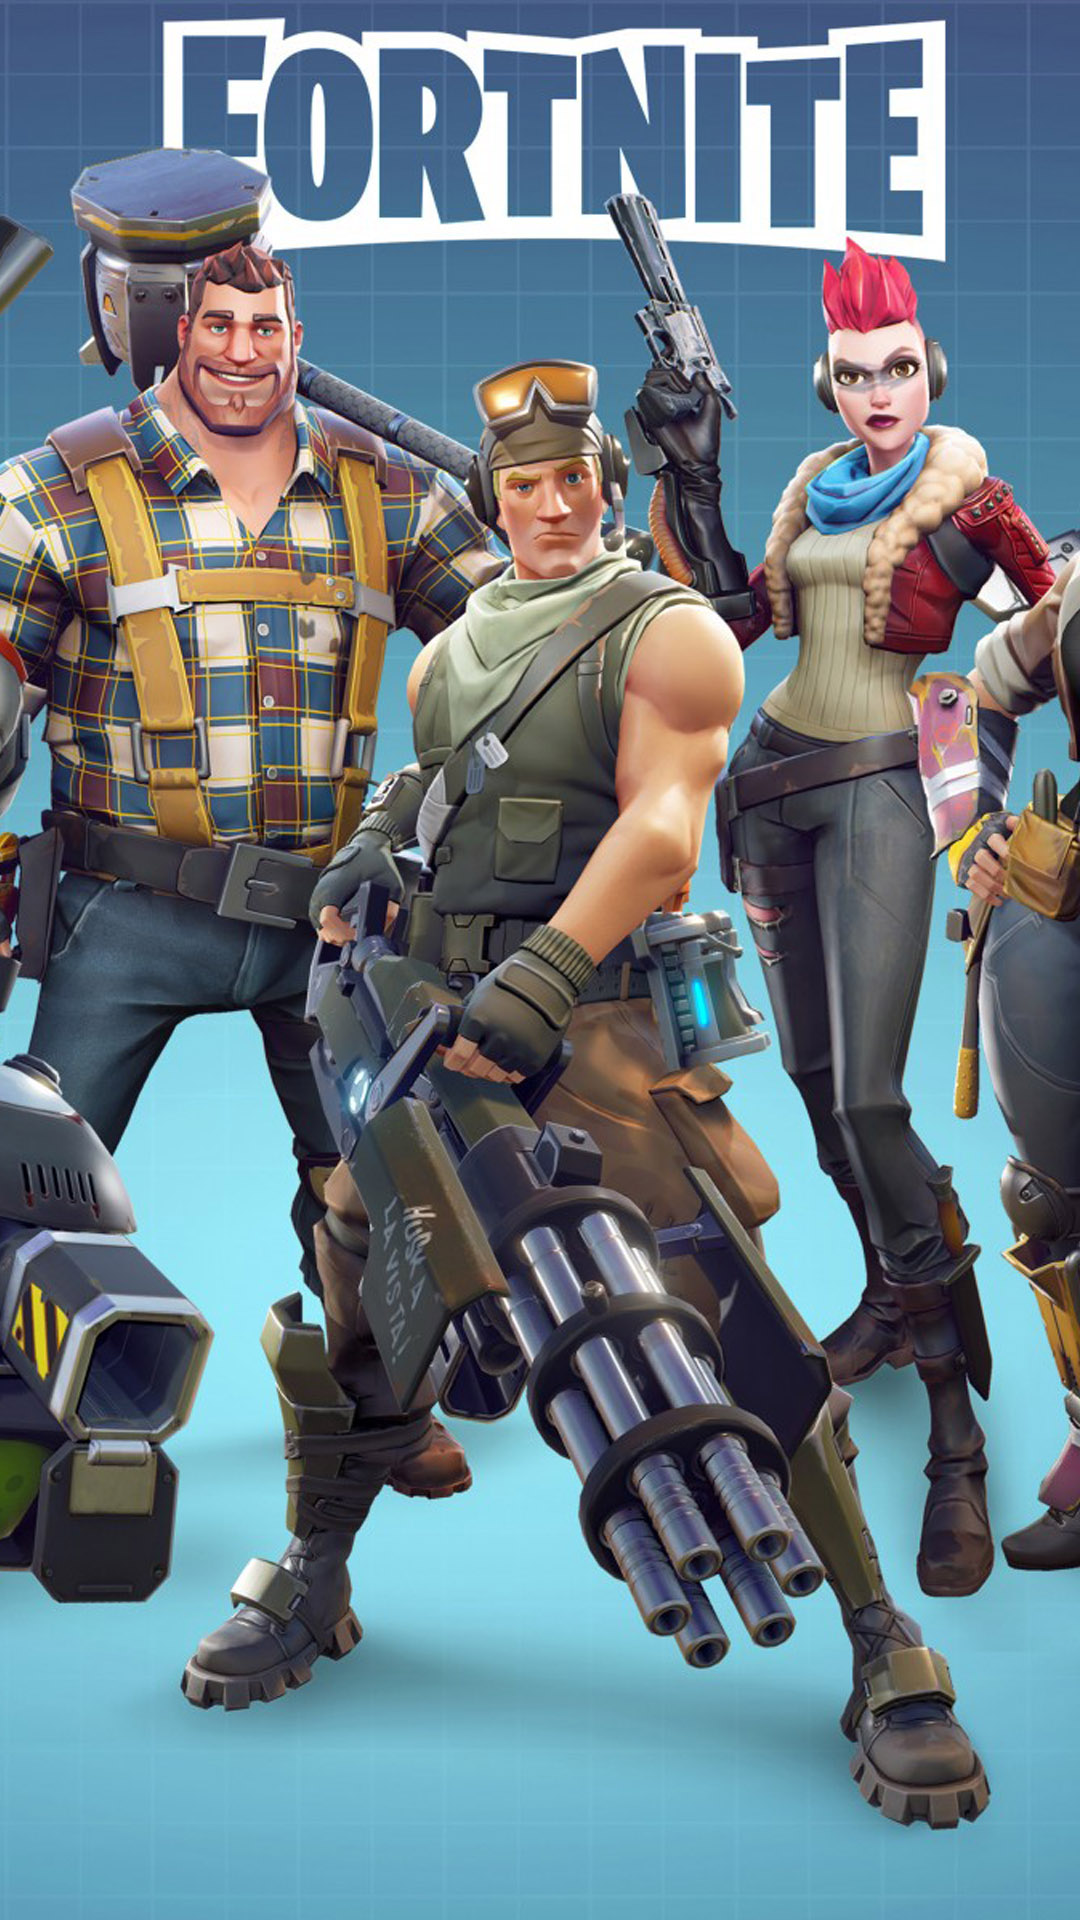 Fortnite Team Download 4k Wallpapers For Iphone And Android